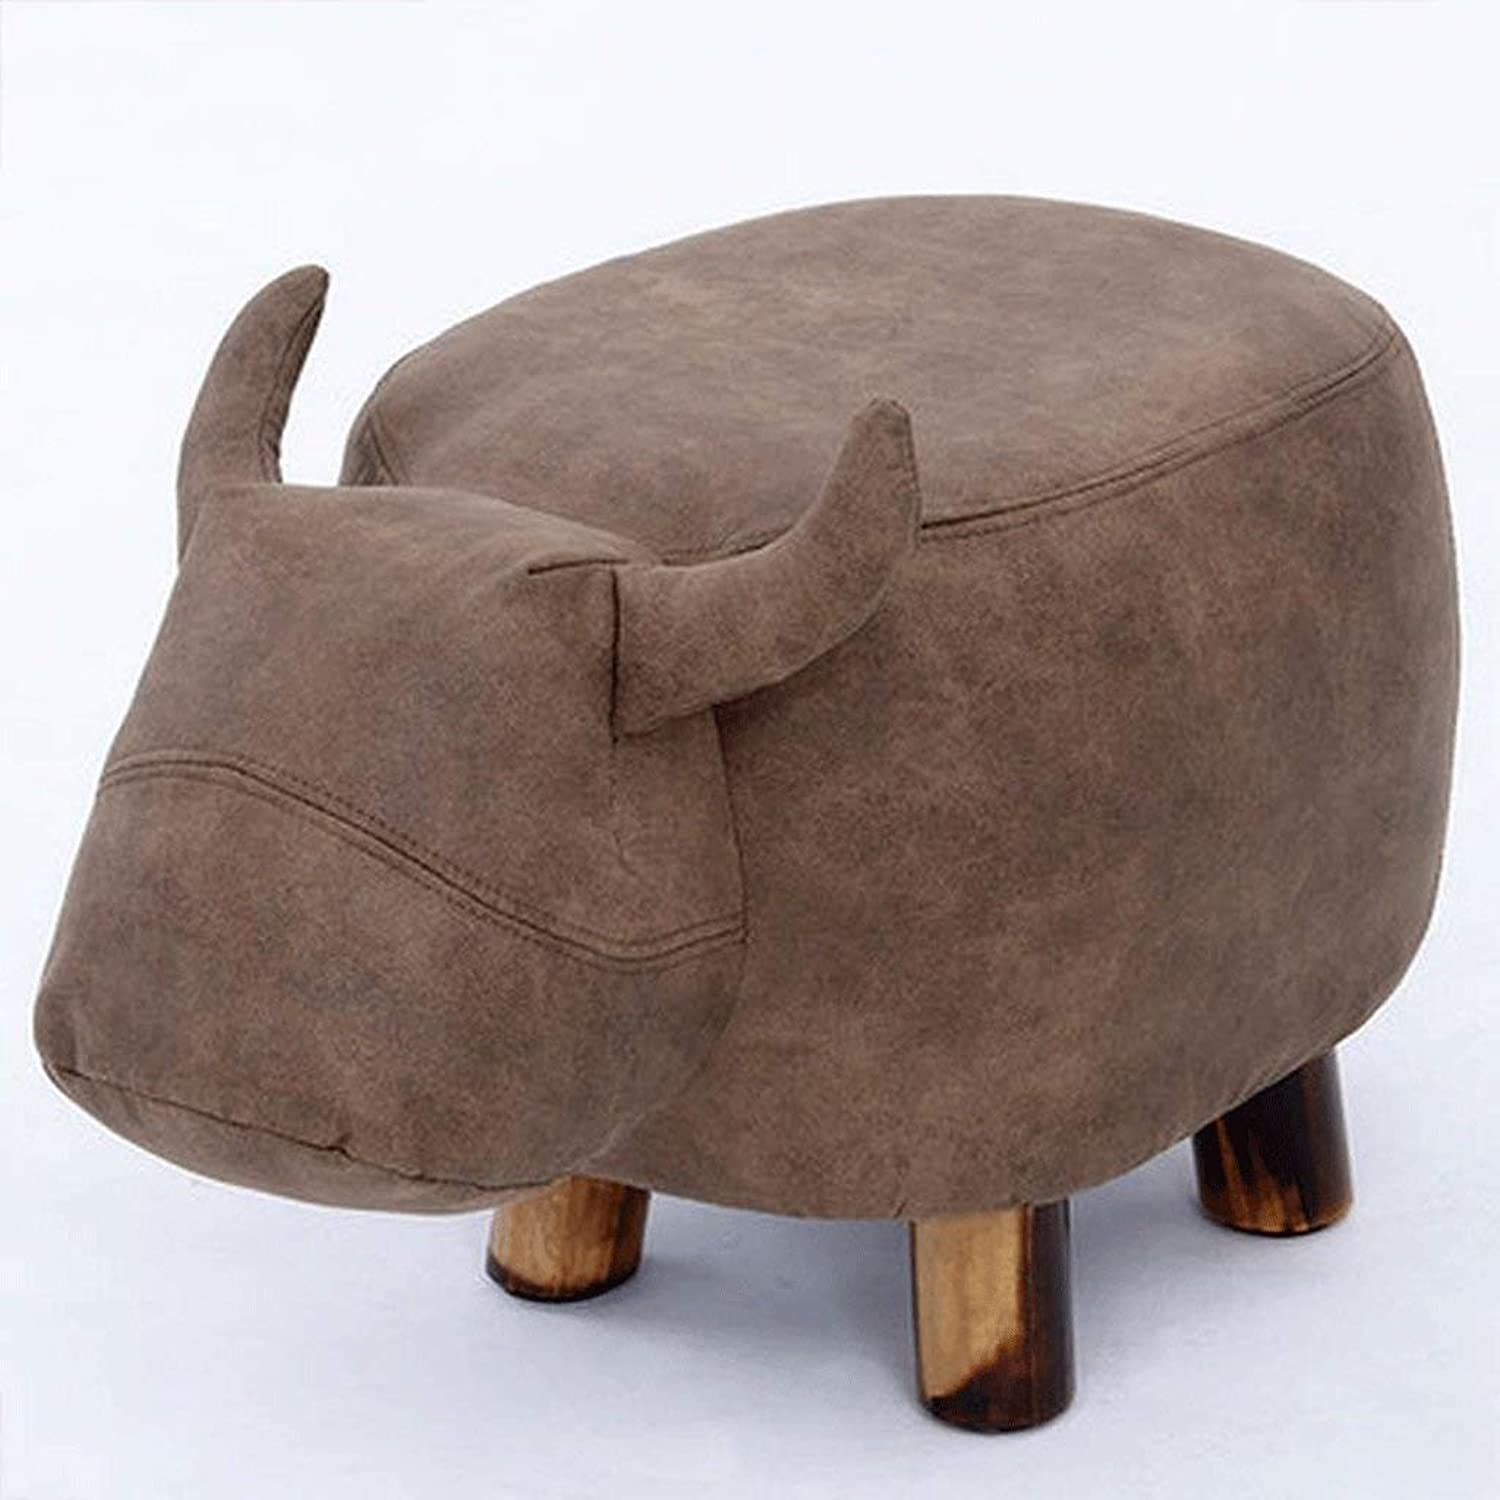 DYR Solid Wood Stool Change shoes Stool Kids Stool Cow Stool Stool Sofa Leather Stool Bench (color  A)